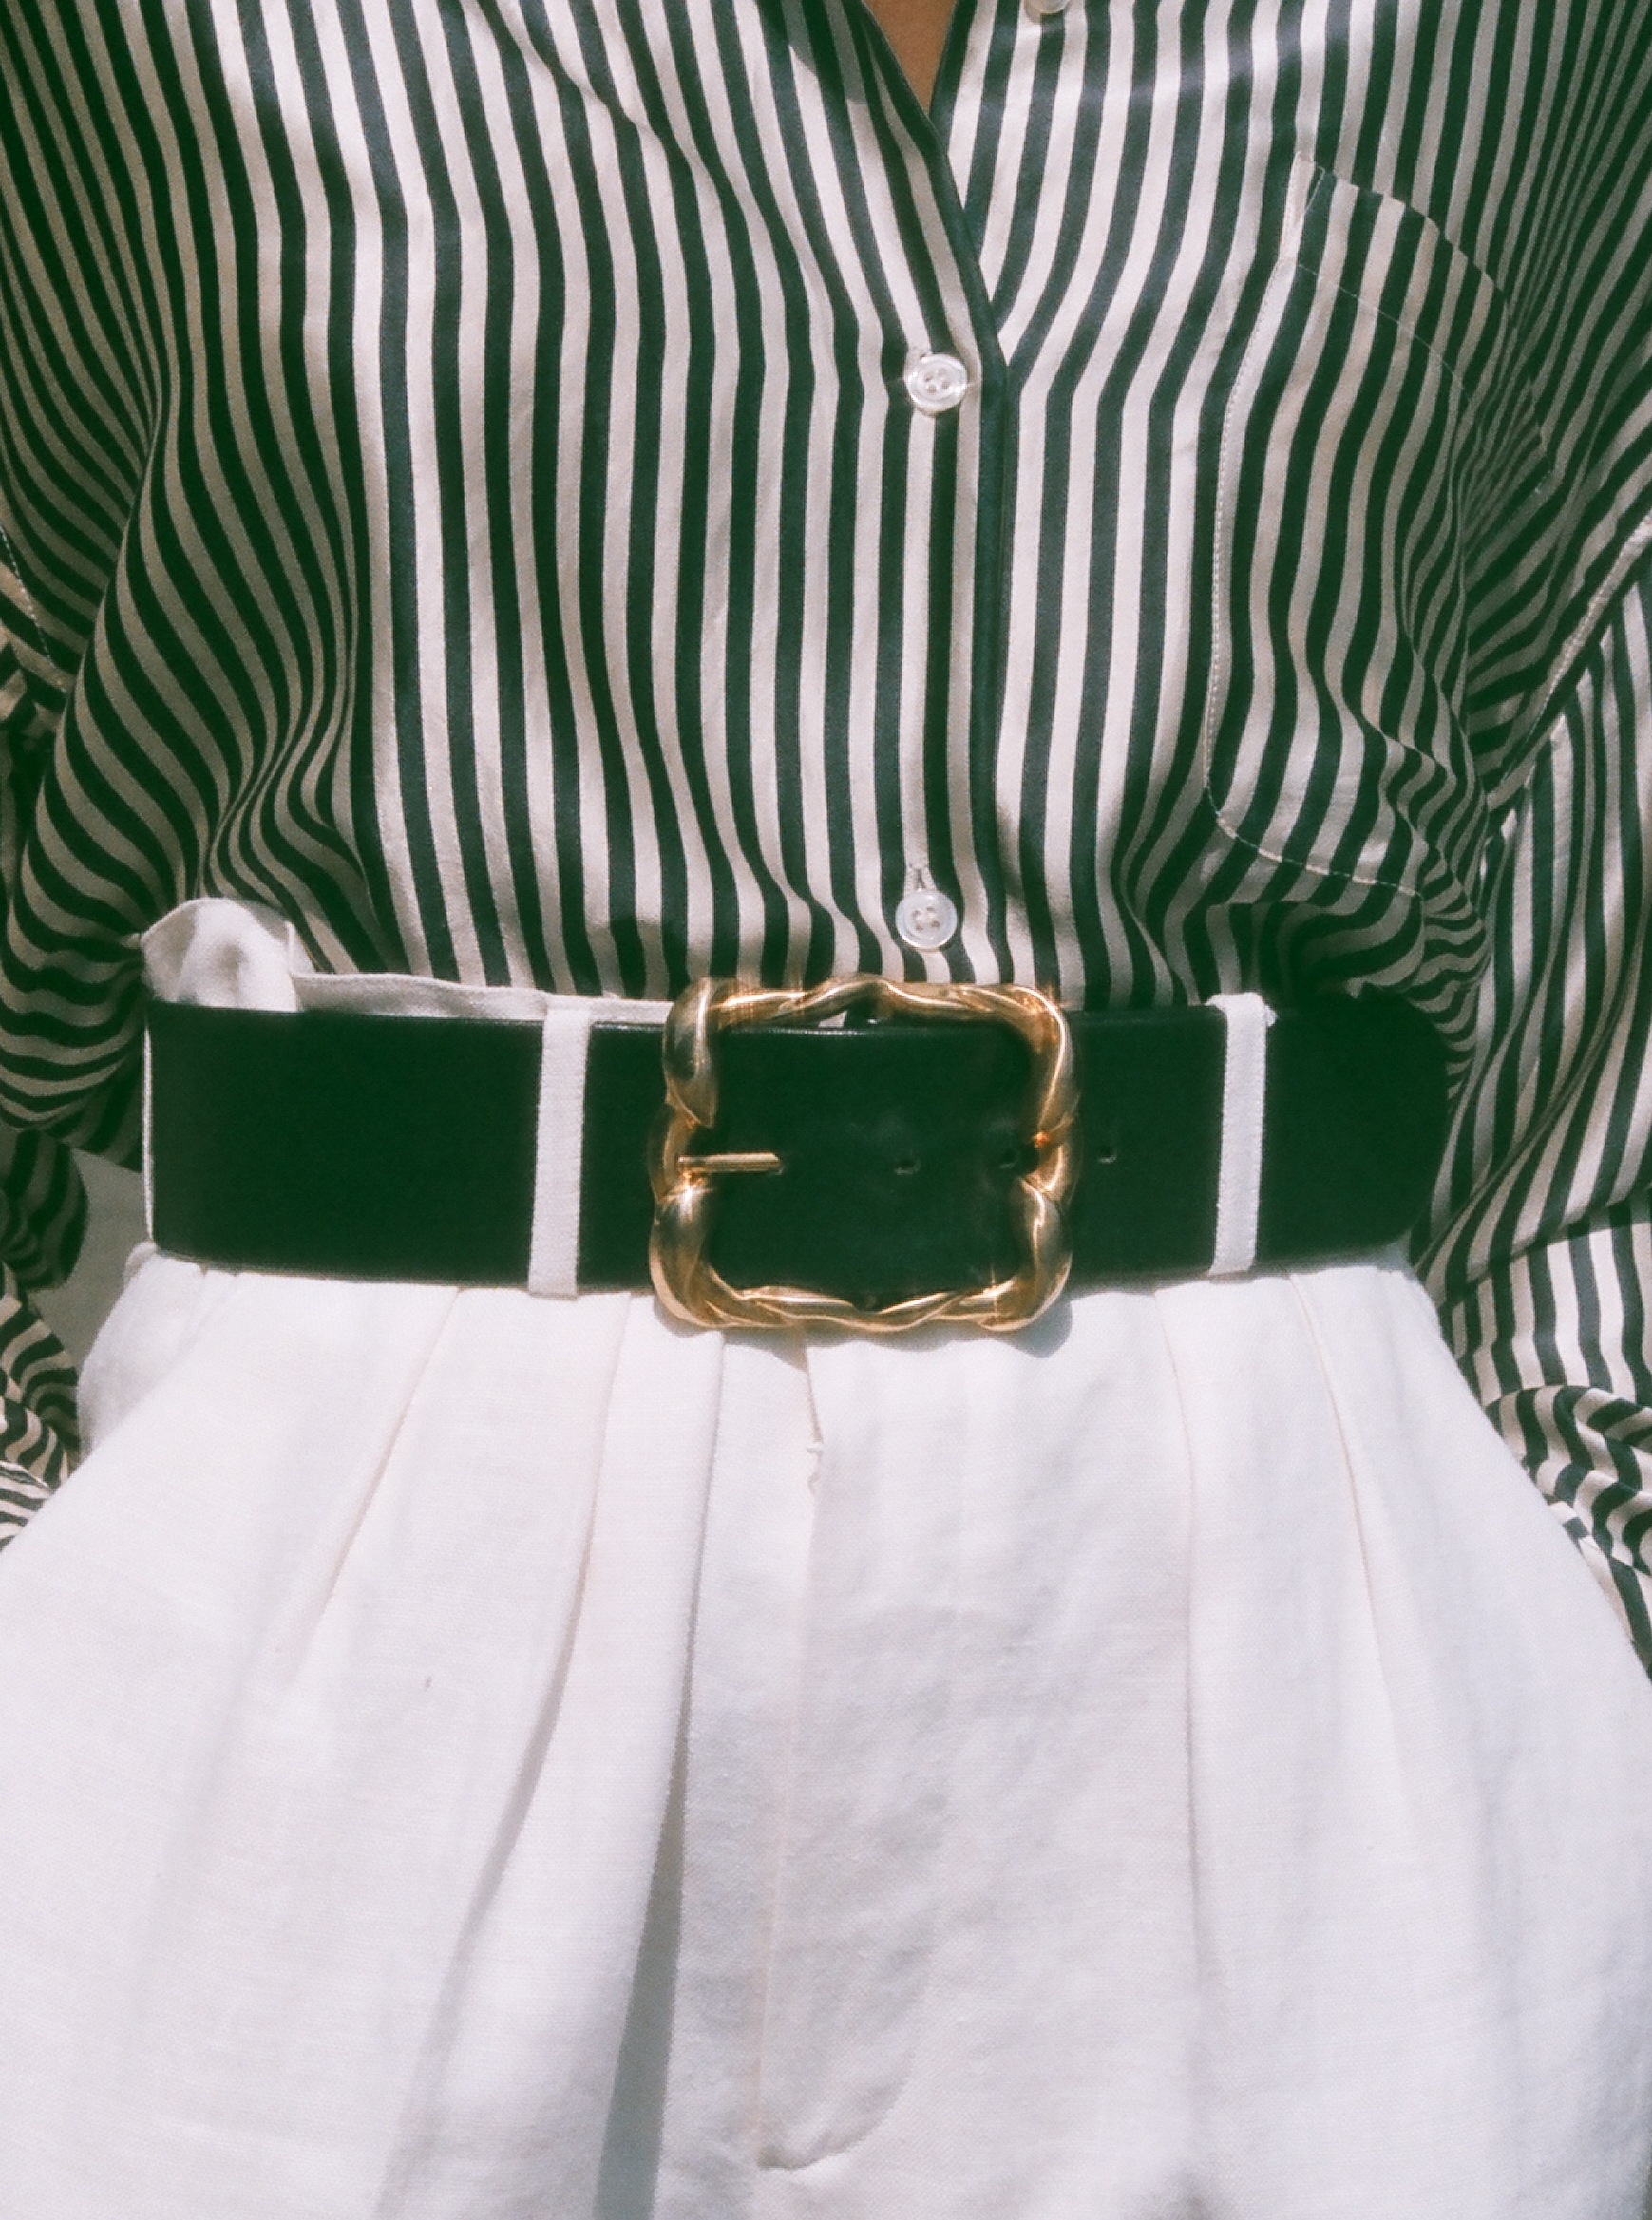 favorite chanel esque belt 2.jpg